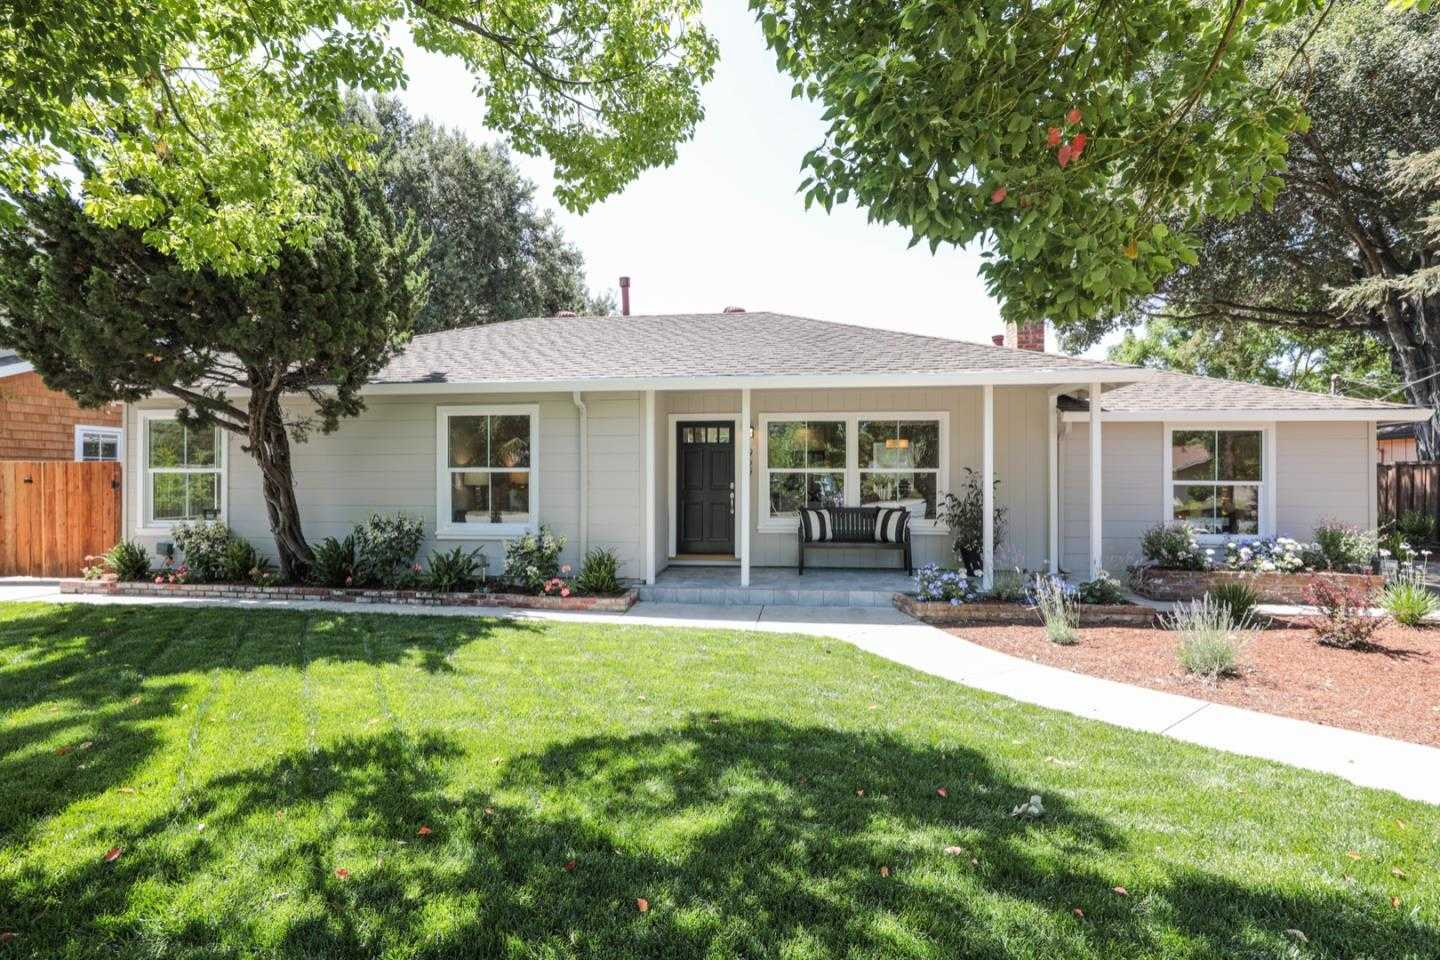 $2,695,000 - 4Br/3Ba -  for Sale in Mountain View